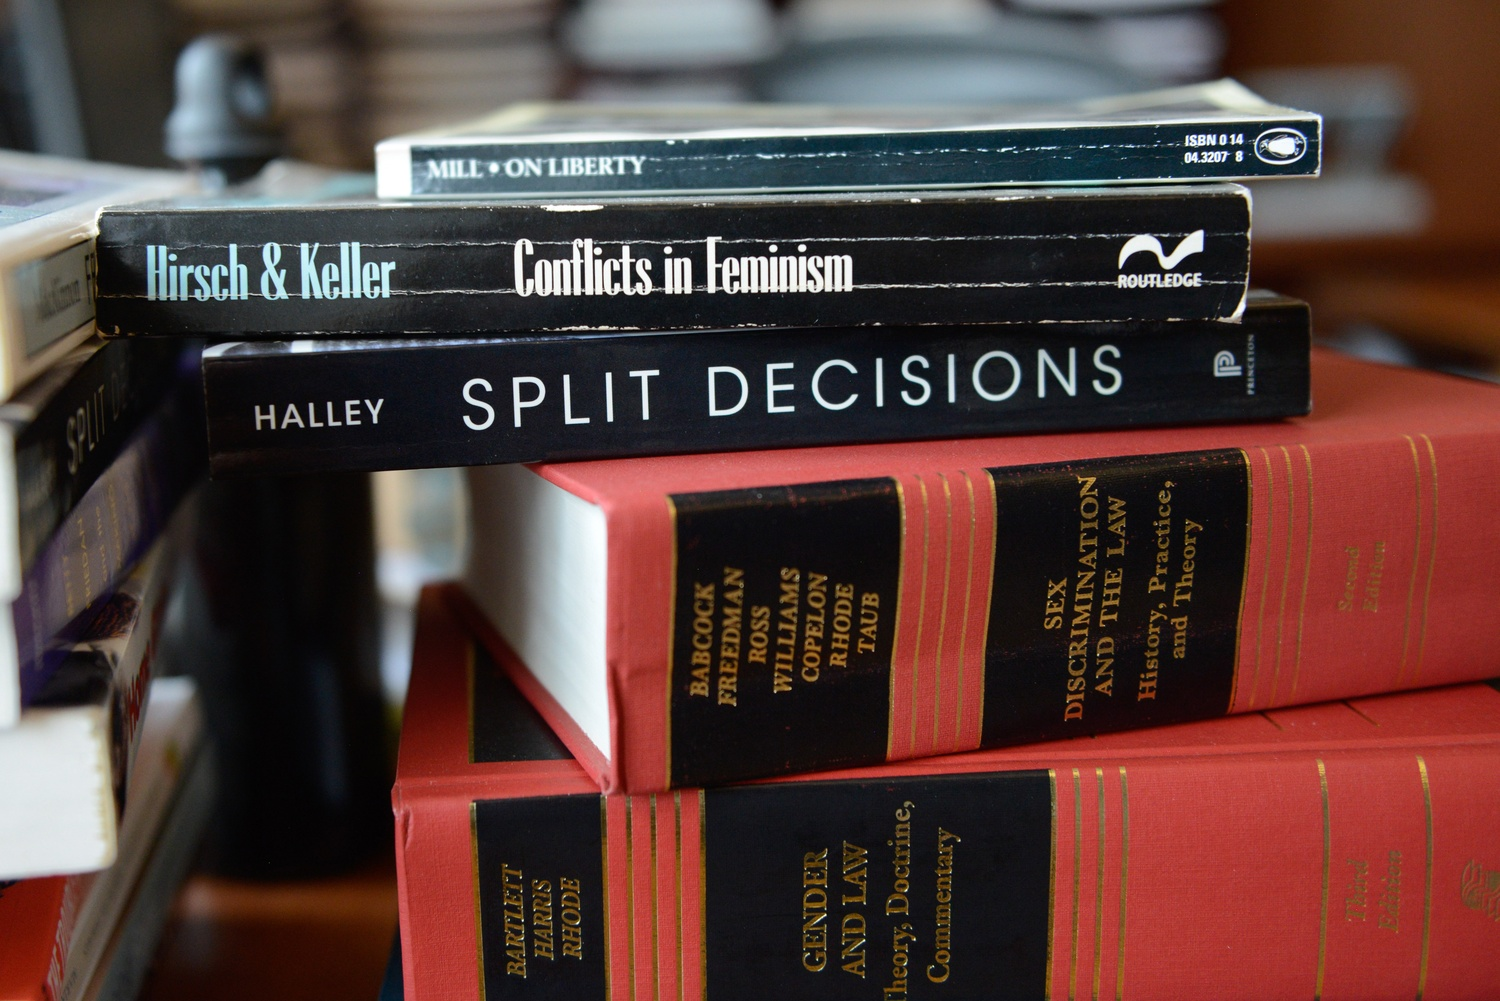 A collection of books—including her own—on topics including law, gender, and sexuality sit on Harvard Law School professor Janet Halley's desk.